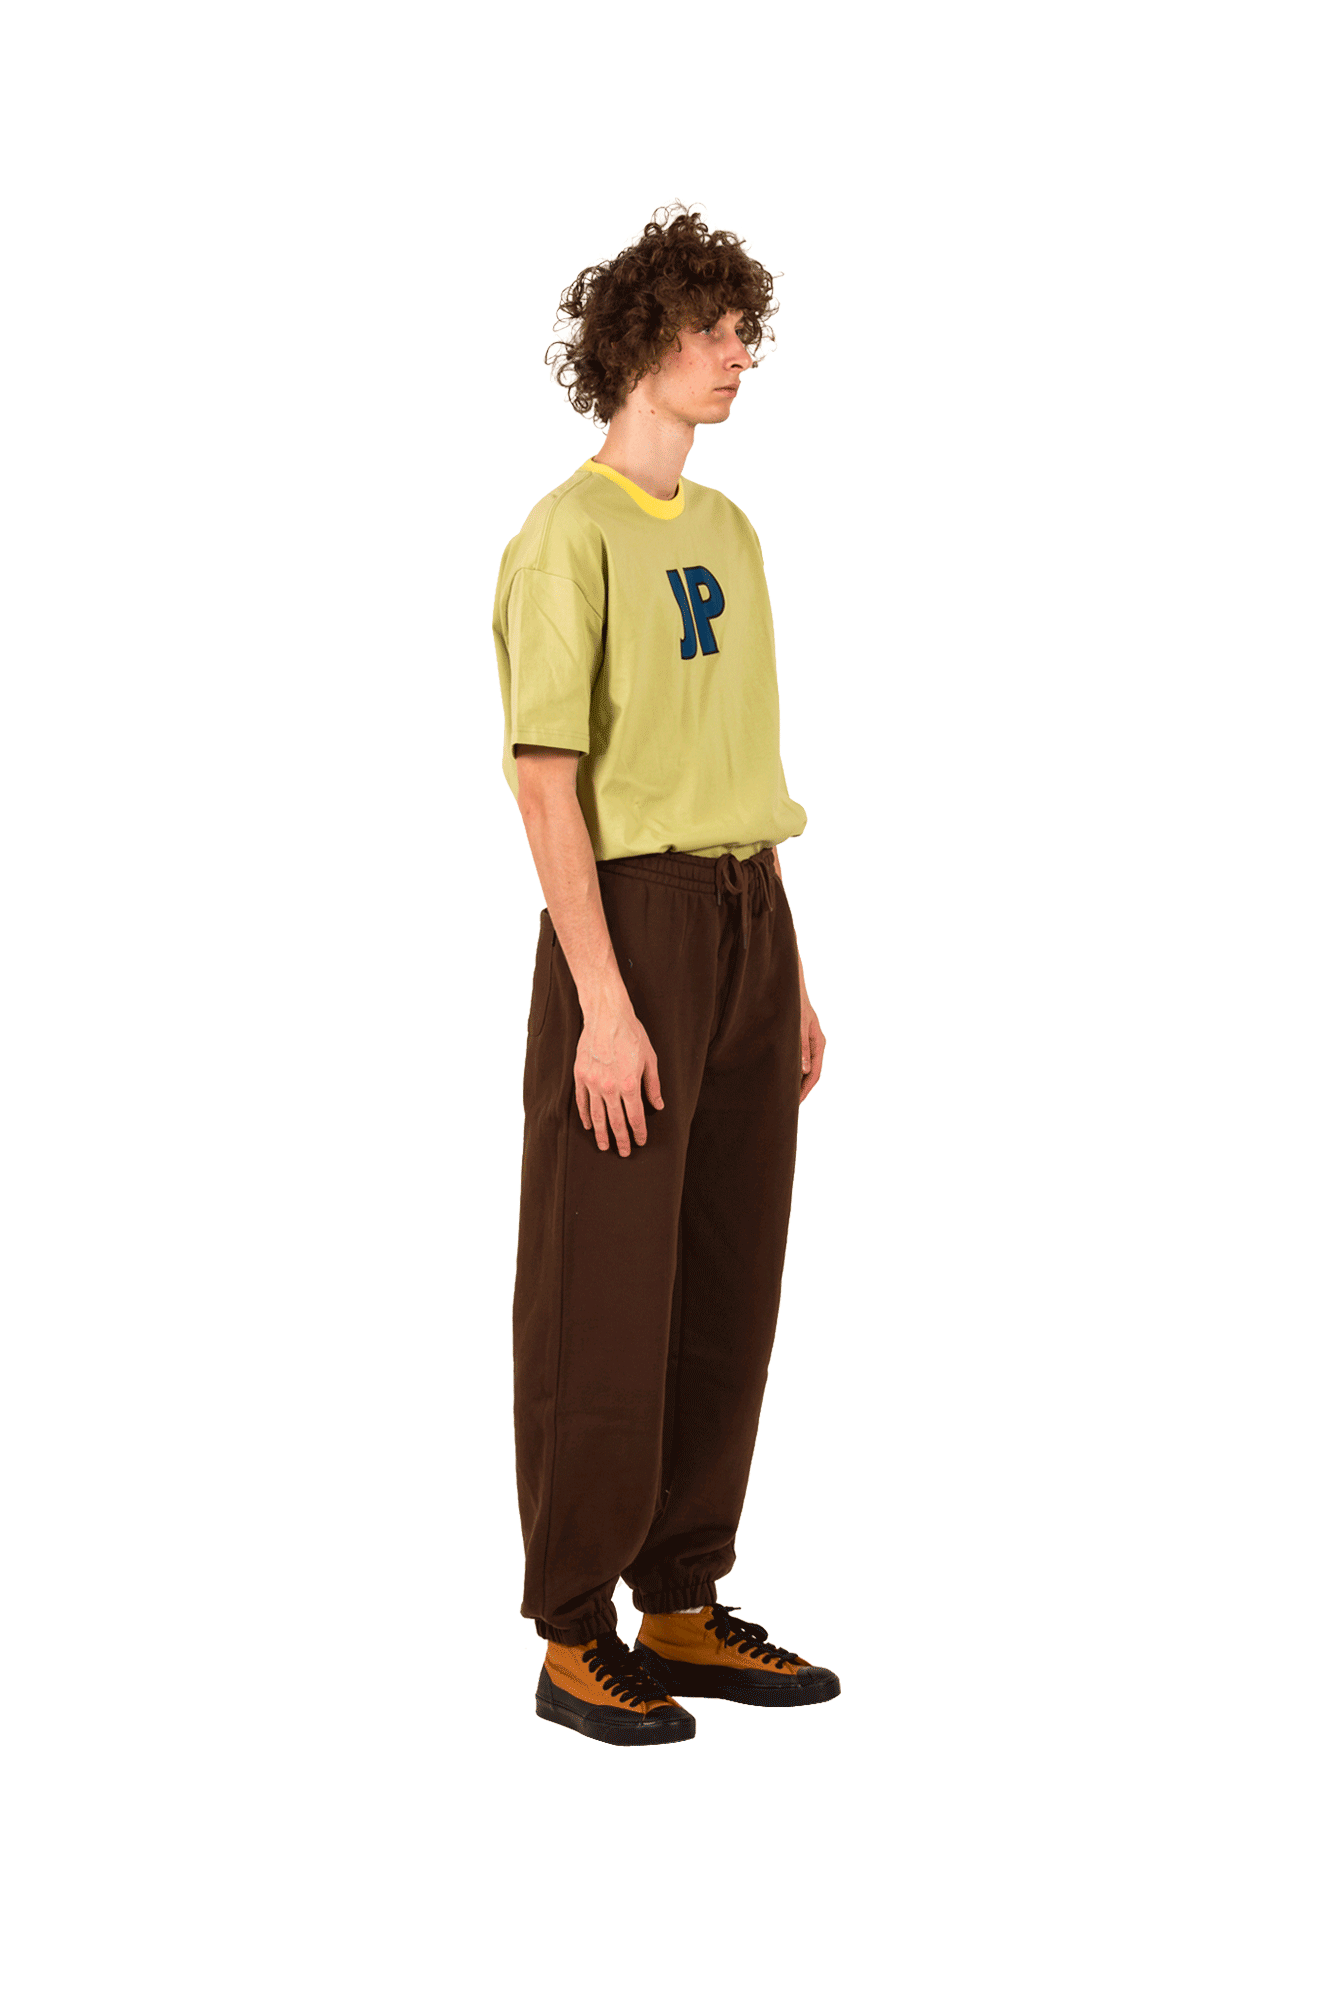 Converse Trousers Sweatpant X ASAP NAST Brown 10017742#A02#267#M - One Block Down